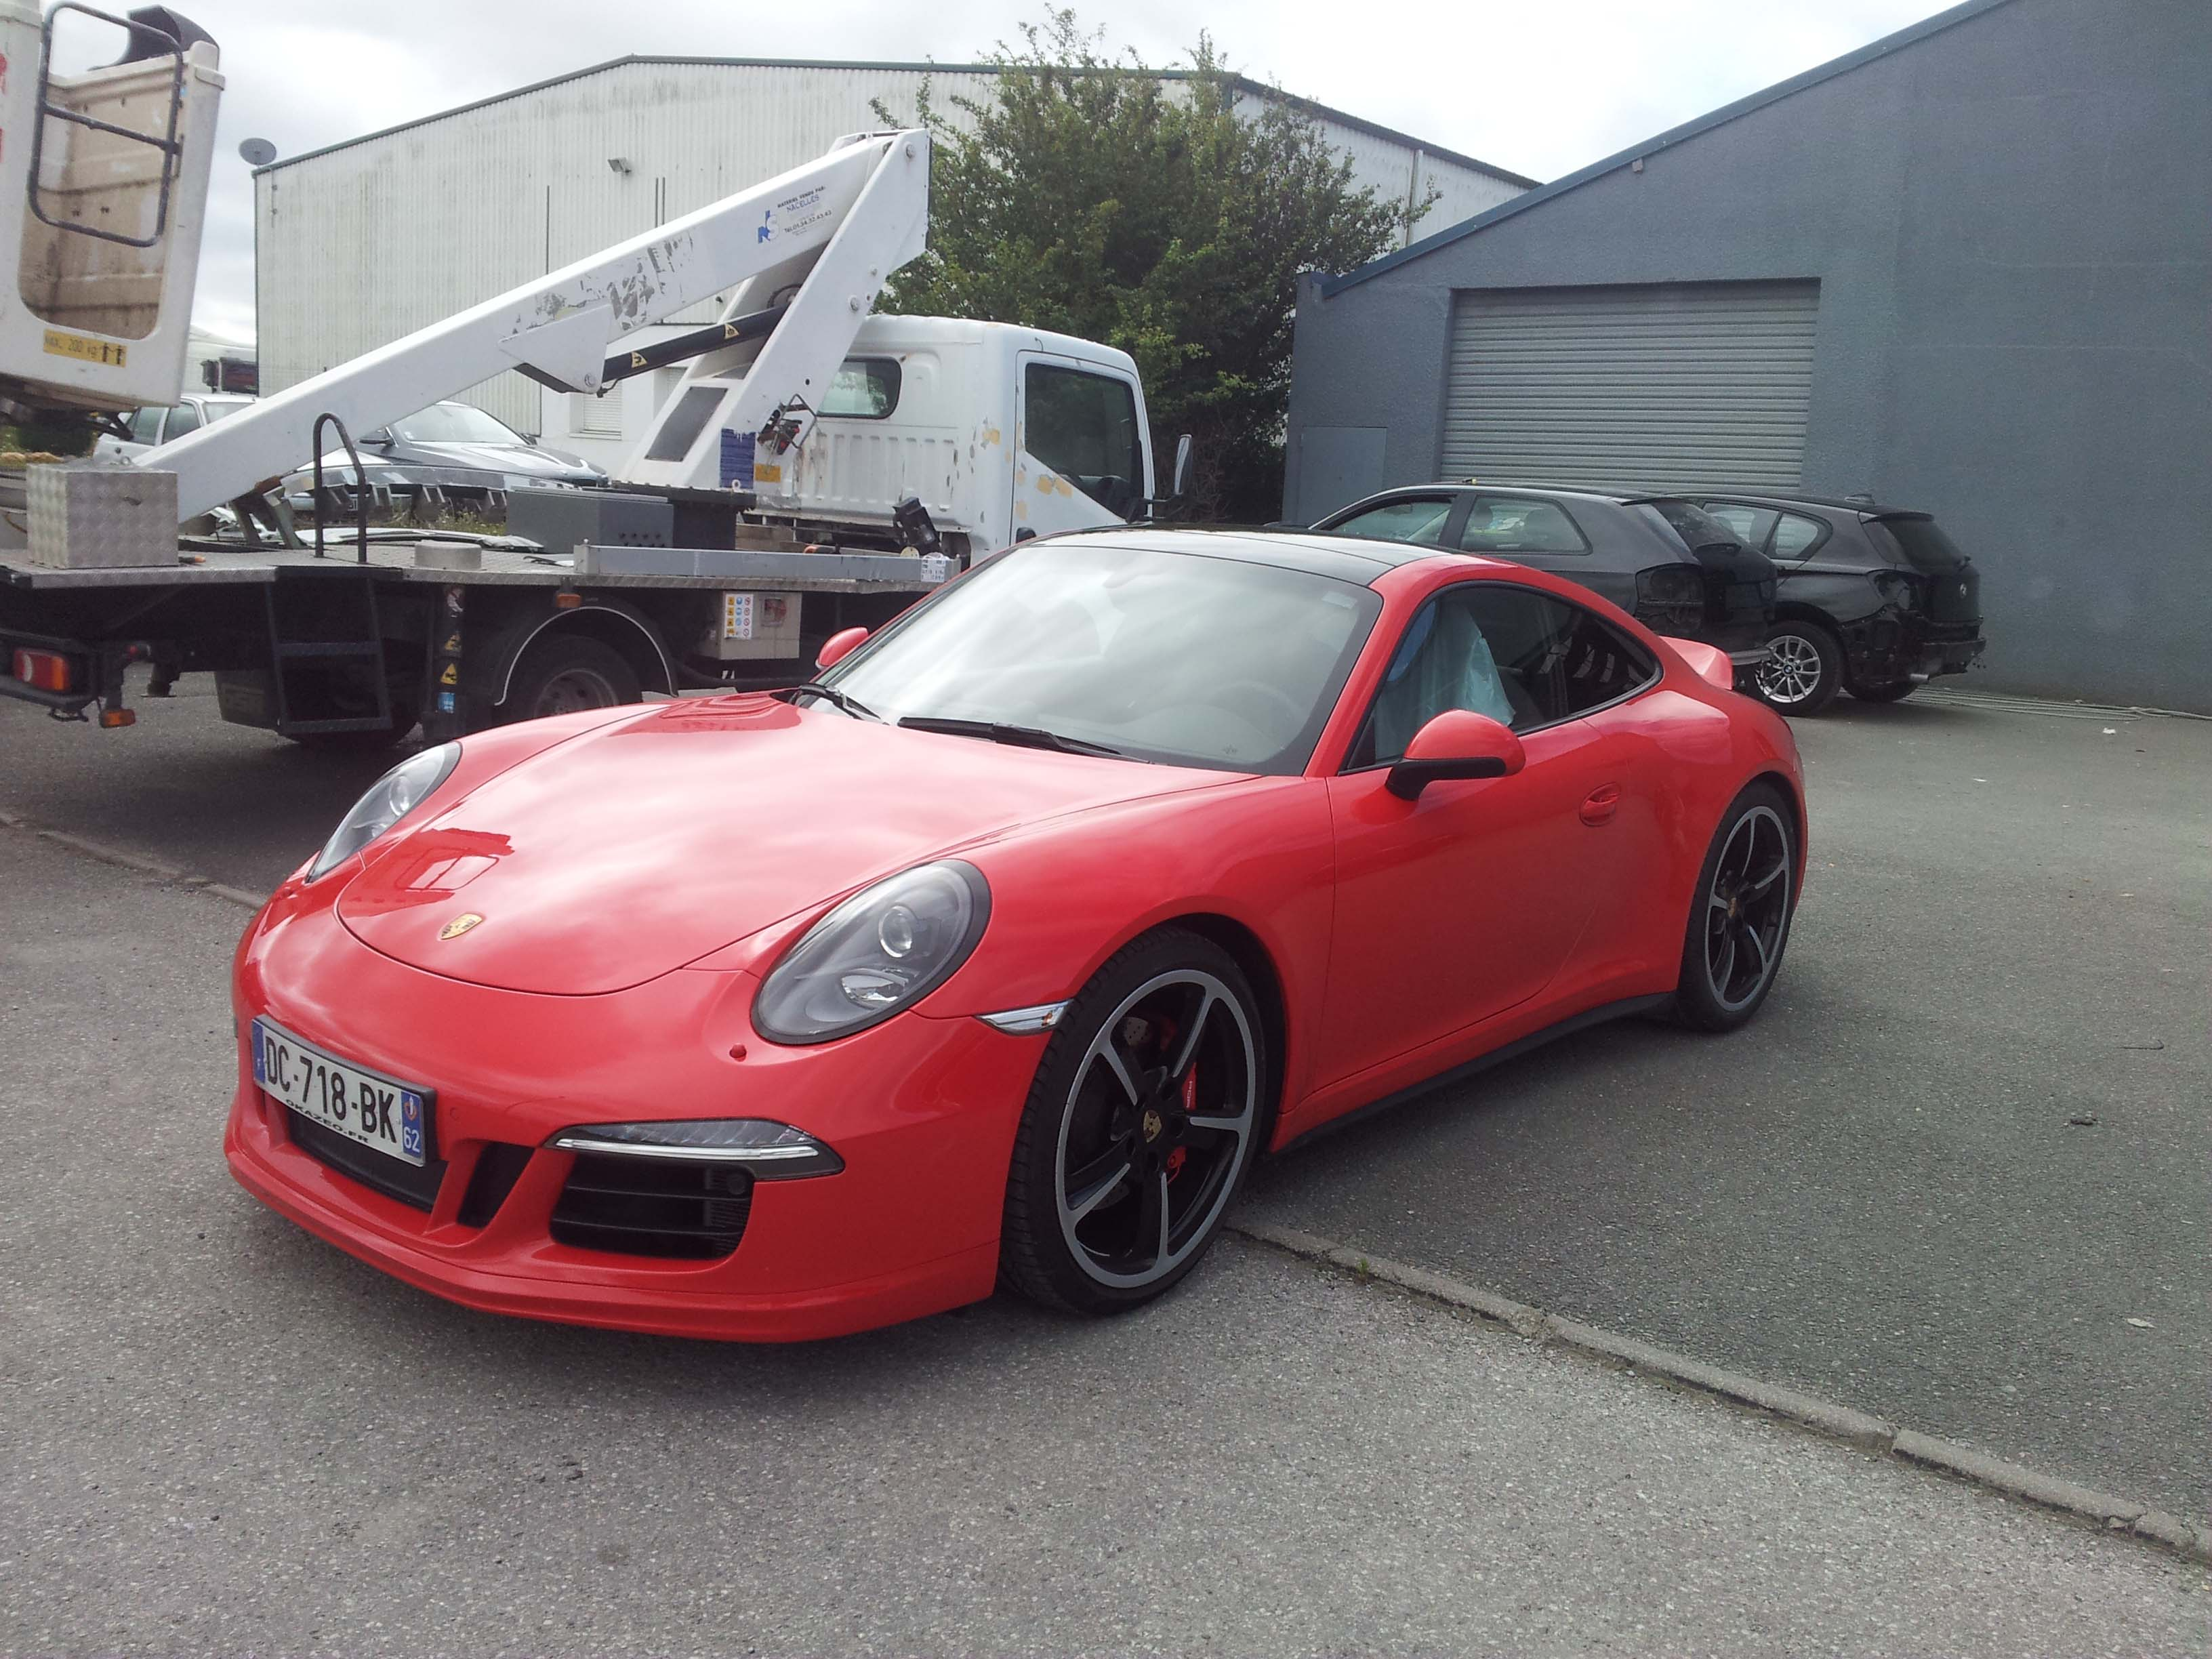 voiture occasion porsche 991 carrera 4s labellis e vendre calais ref 580. Black Bedroom Furniture Sets. Home Design Ideas